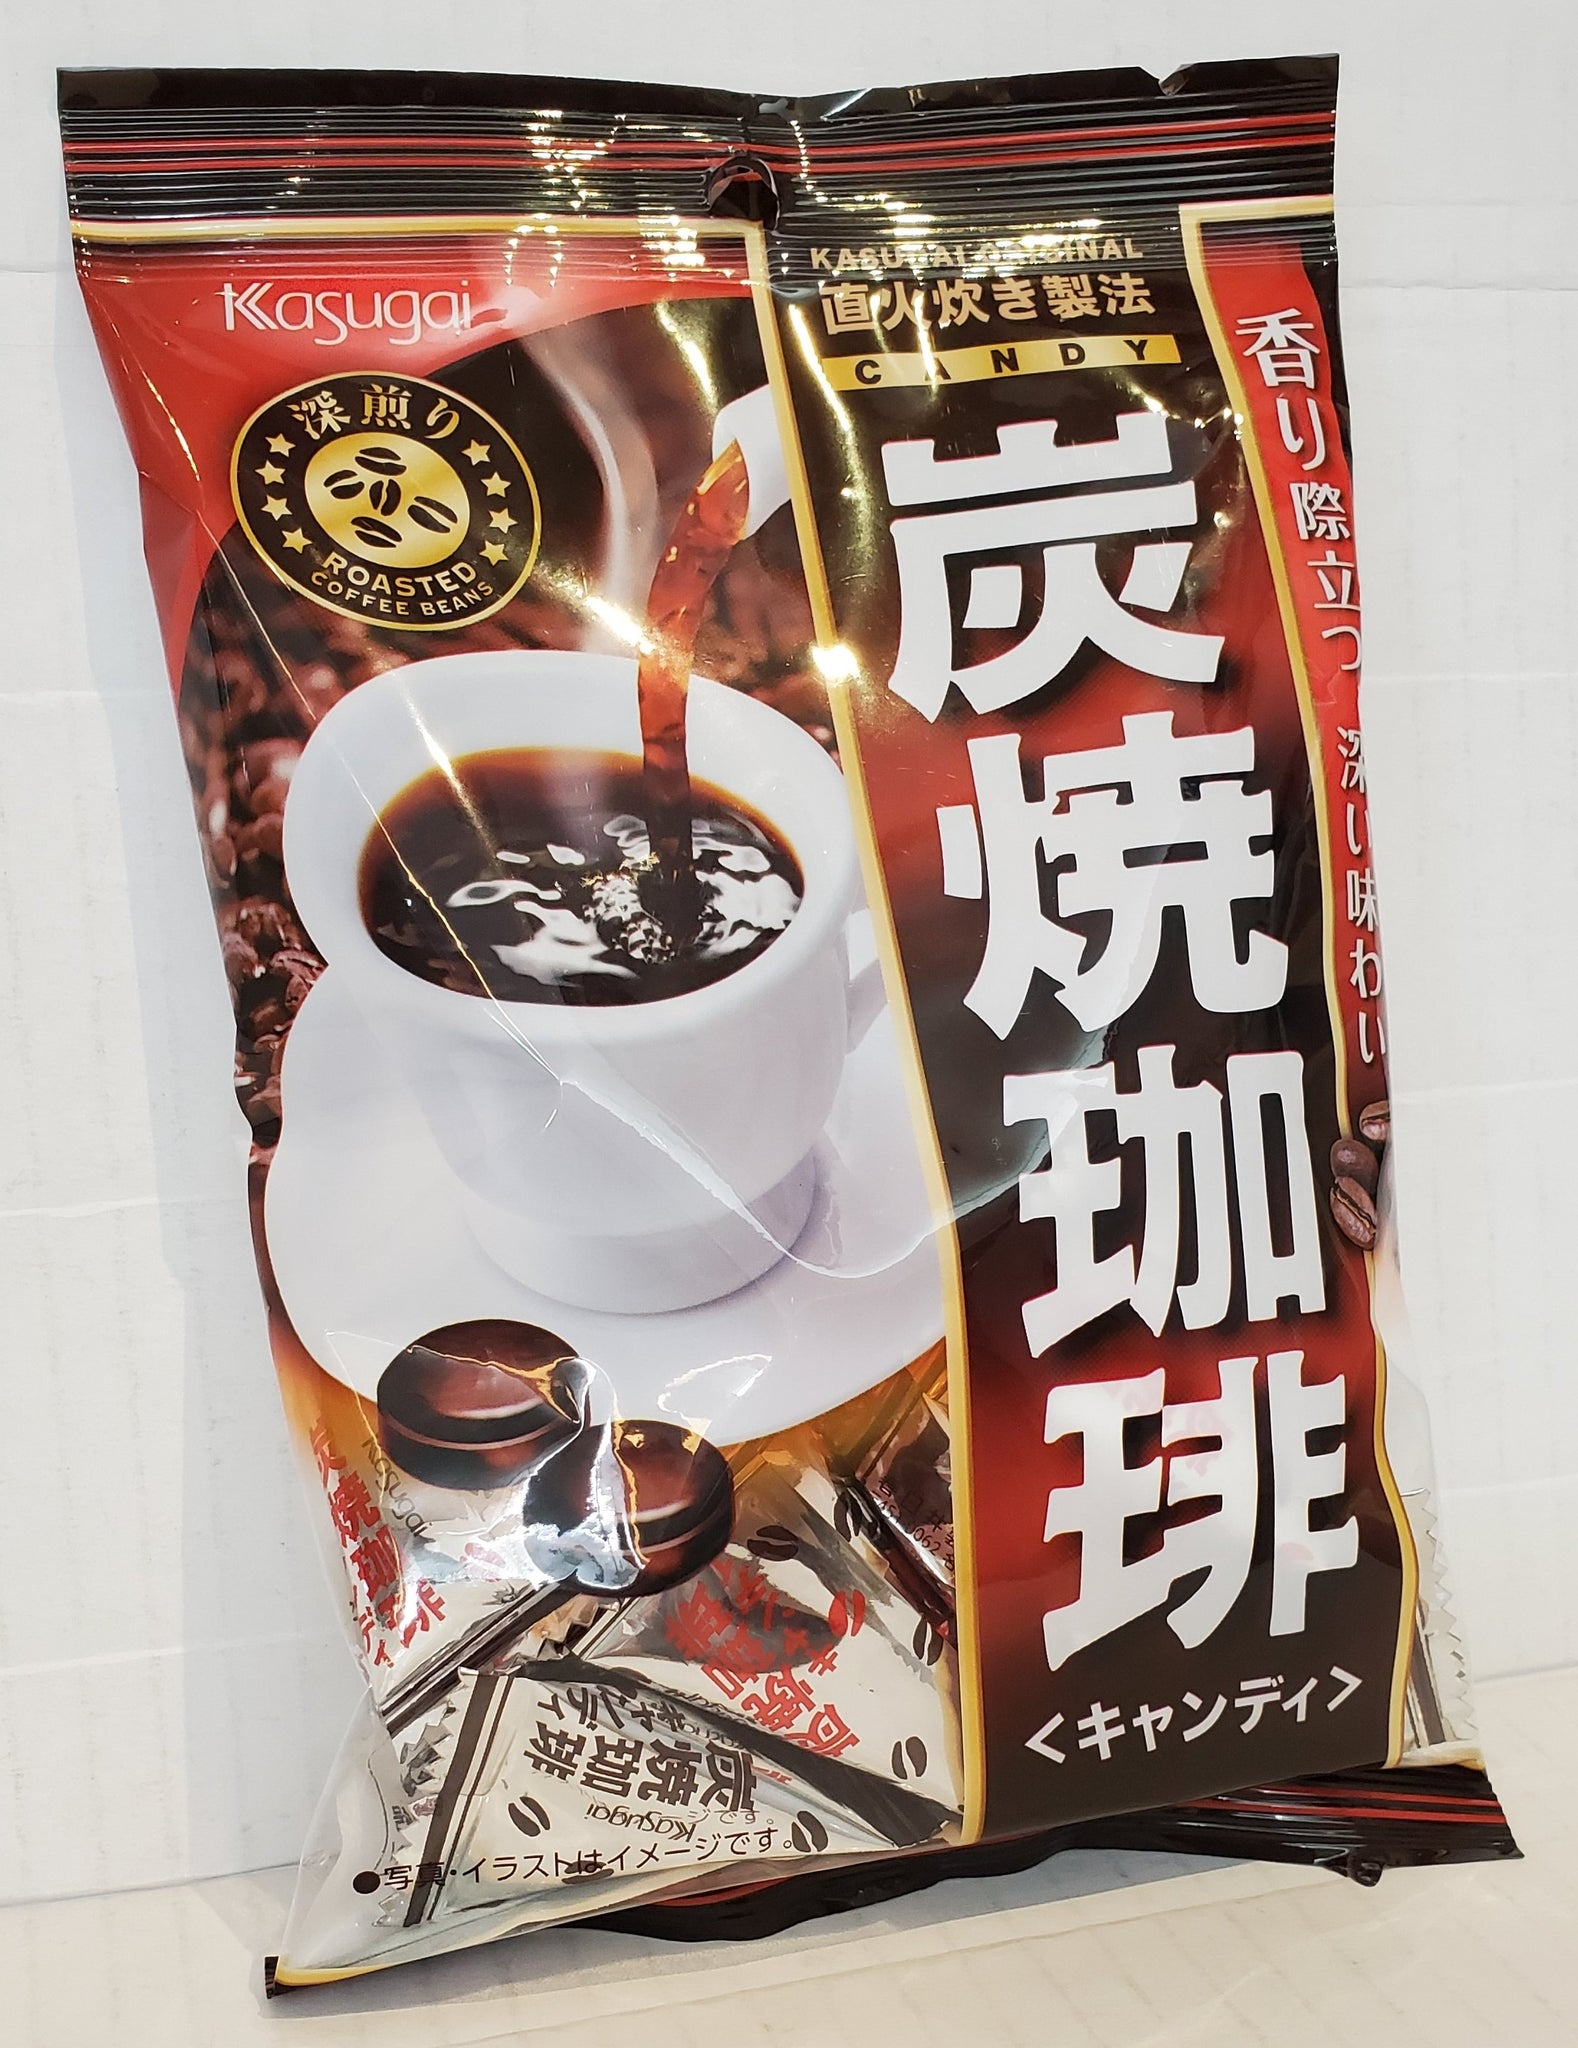 Kasugai Sumiyaki coffee candy 春日井炭燒咖啡糖